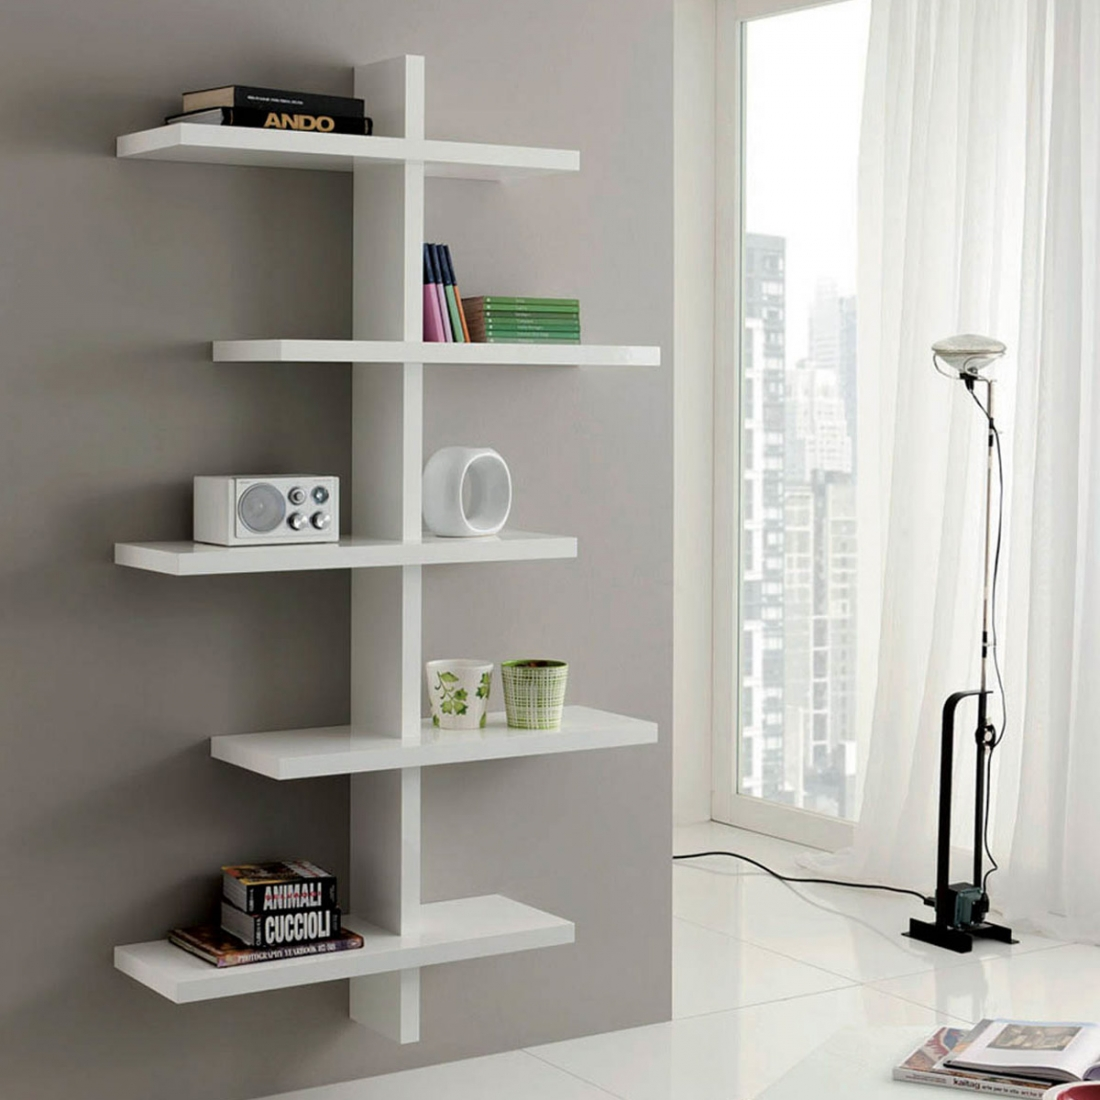 Etag re murale design haute vittoria - Etagere metal design ...